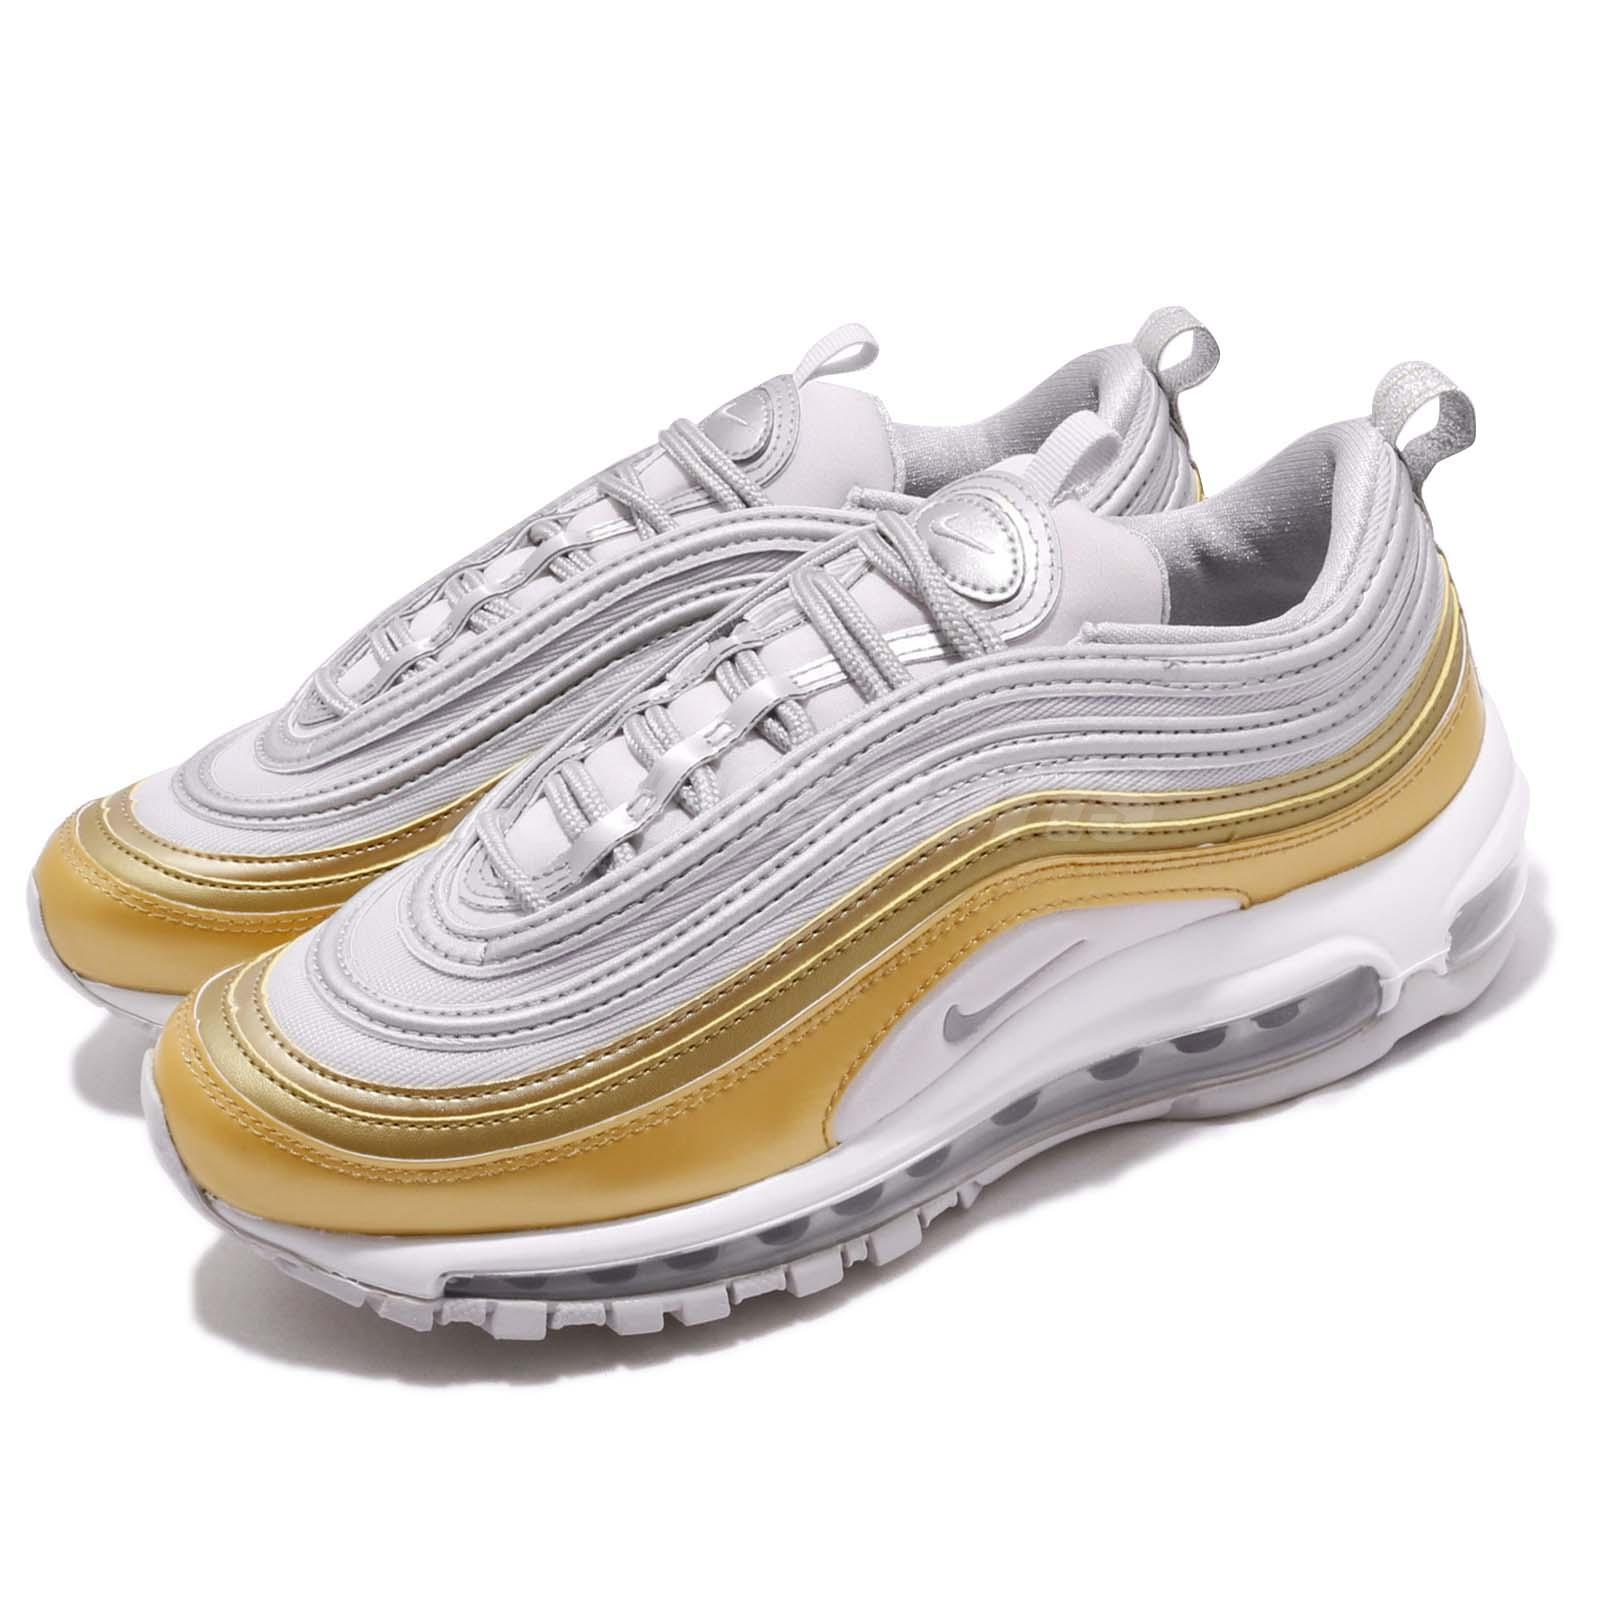 Details about Nike Wmns Air Max 97 SE Metallic Silver Vast Grey Gold Women Shoes AQ4137 001